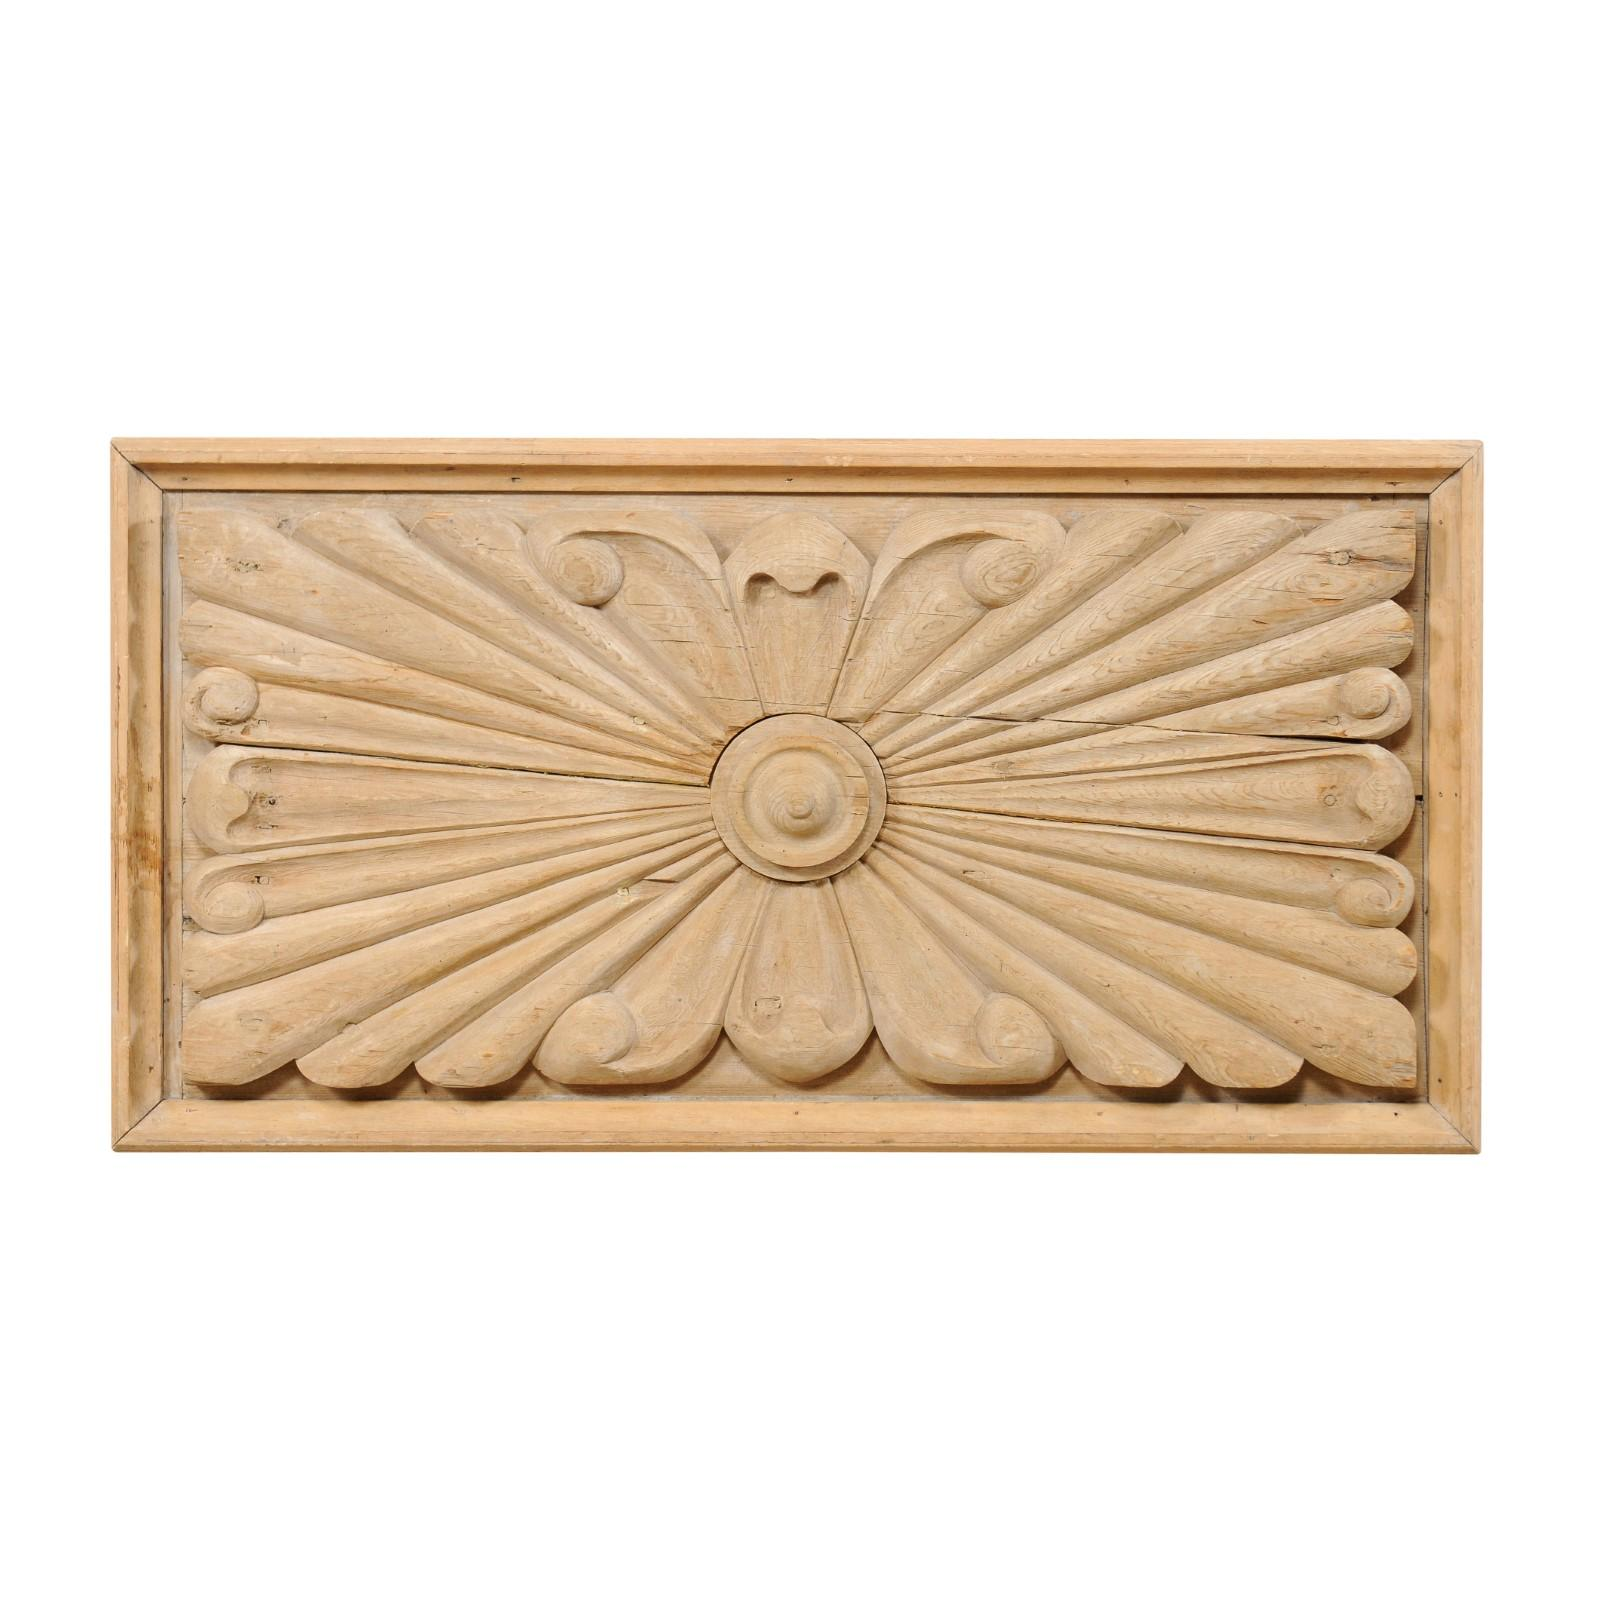 Vintage Wall Plaques 281 For Sale On 1stdibs